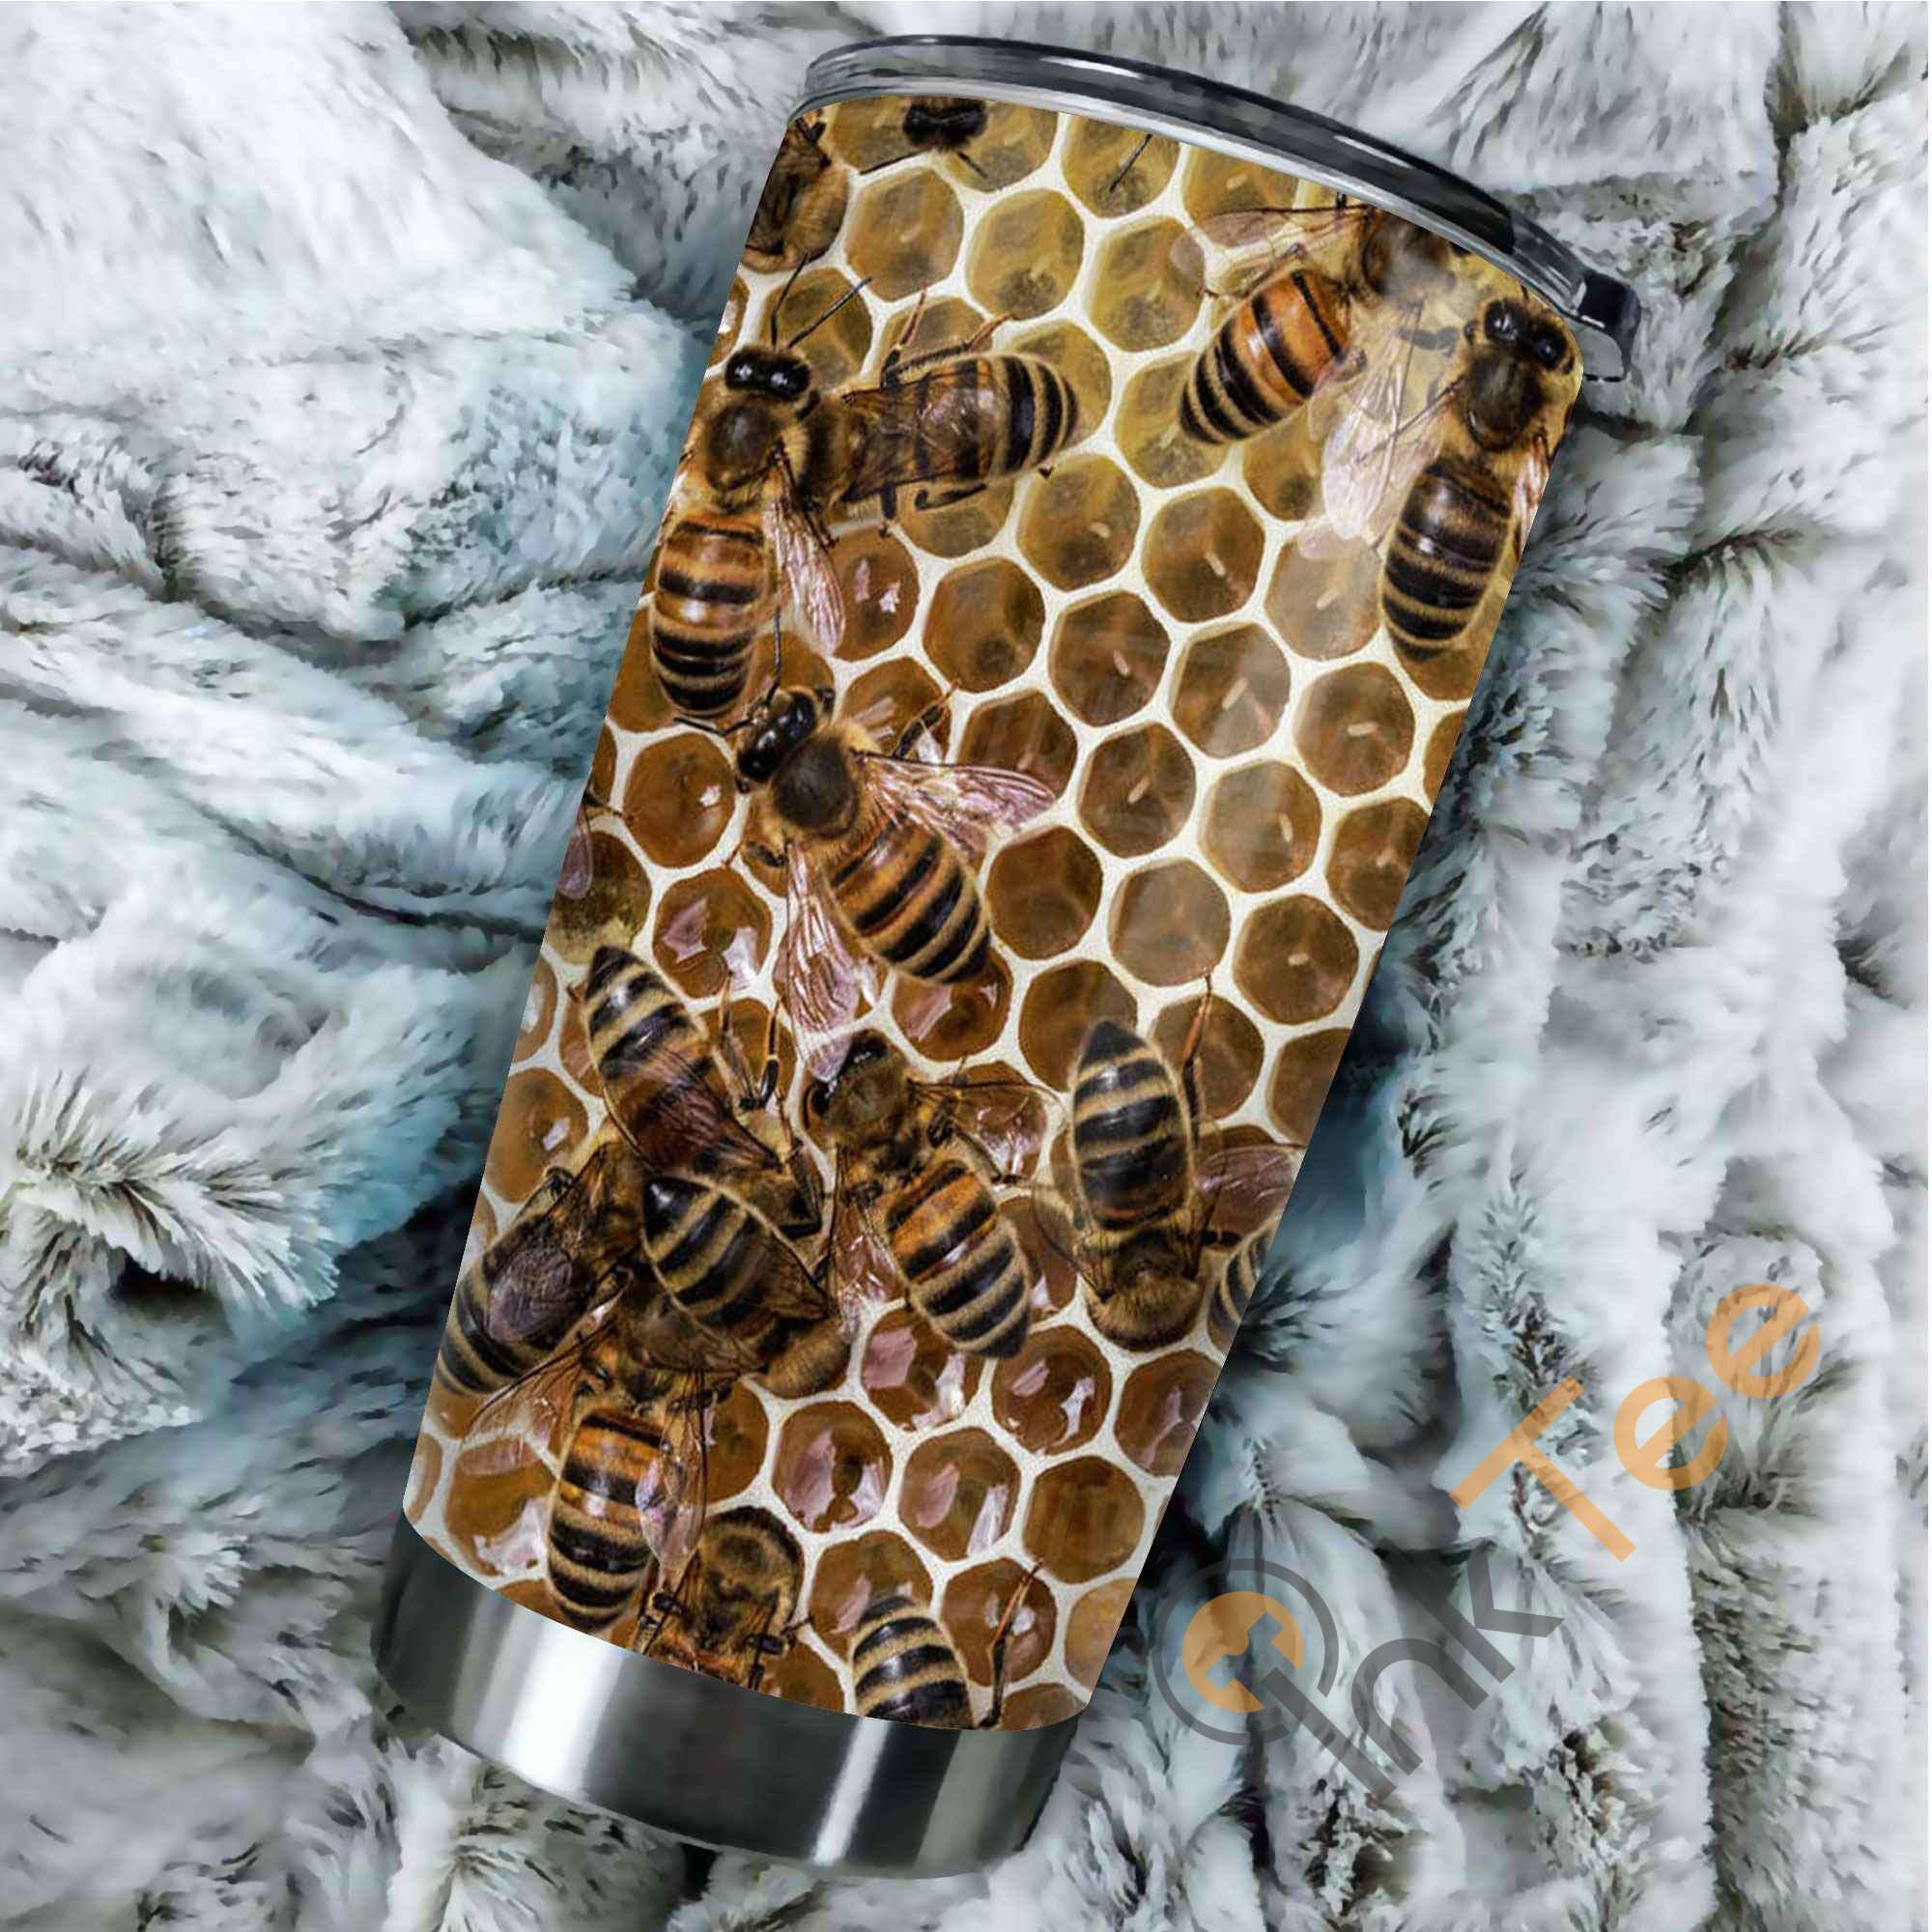 Bees Hive Stainless Steel Tumbler